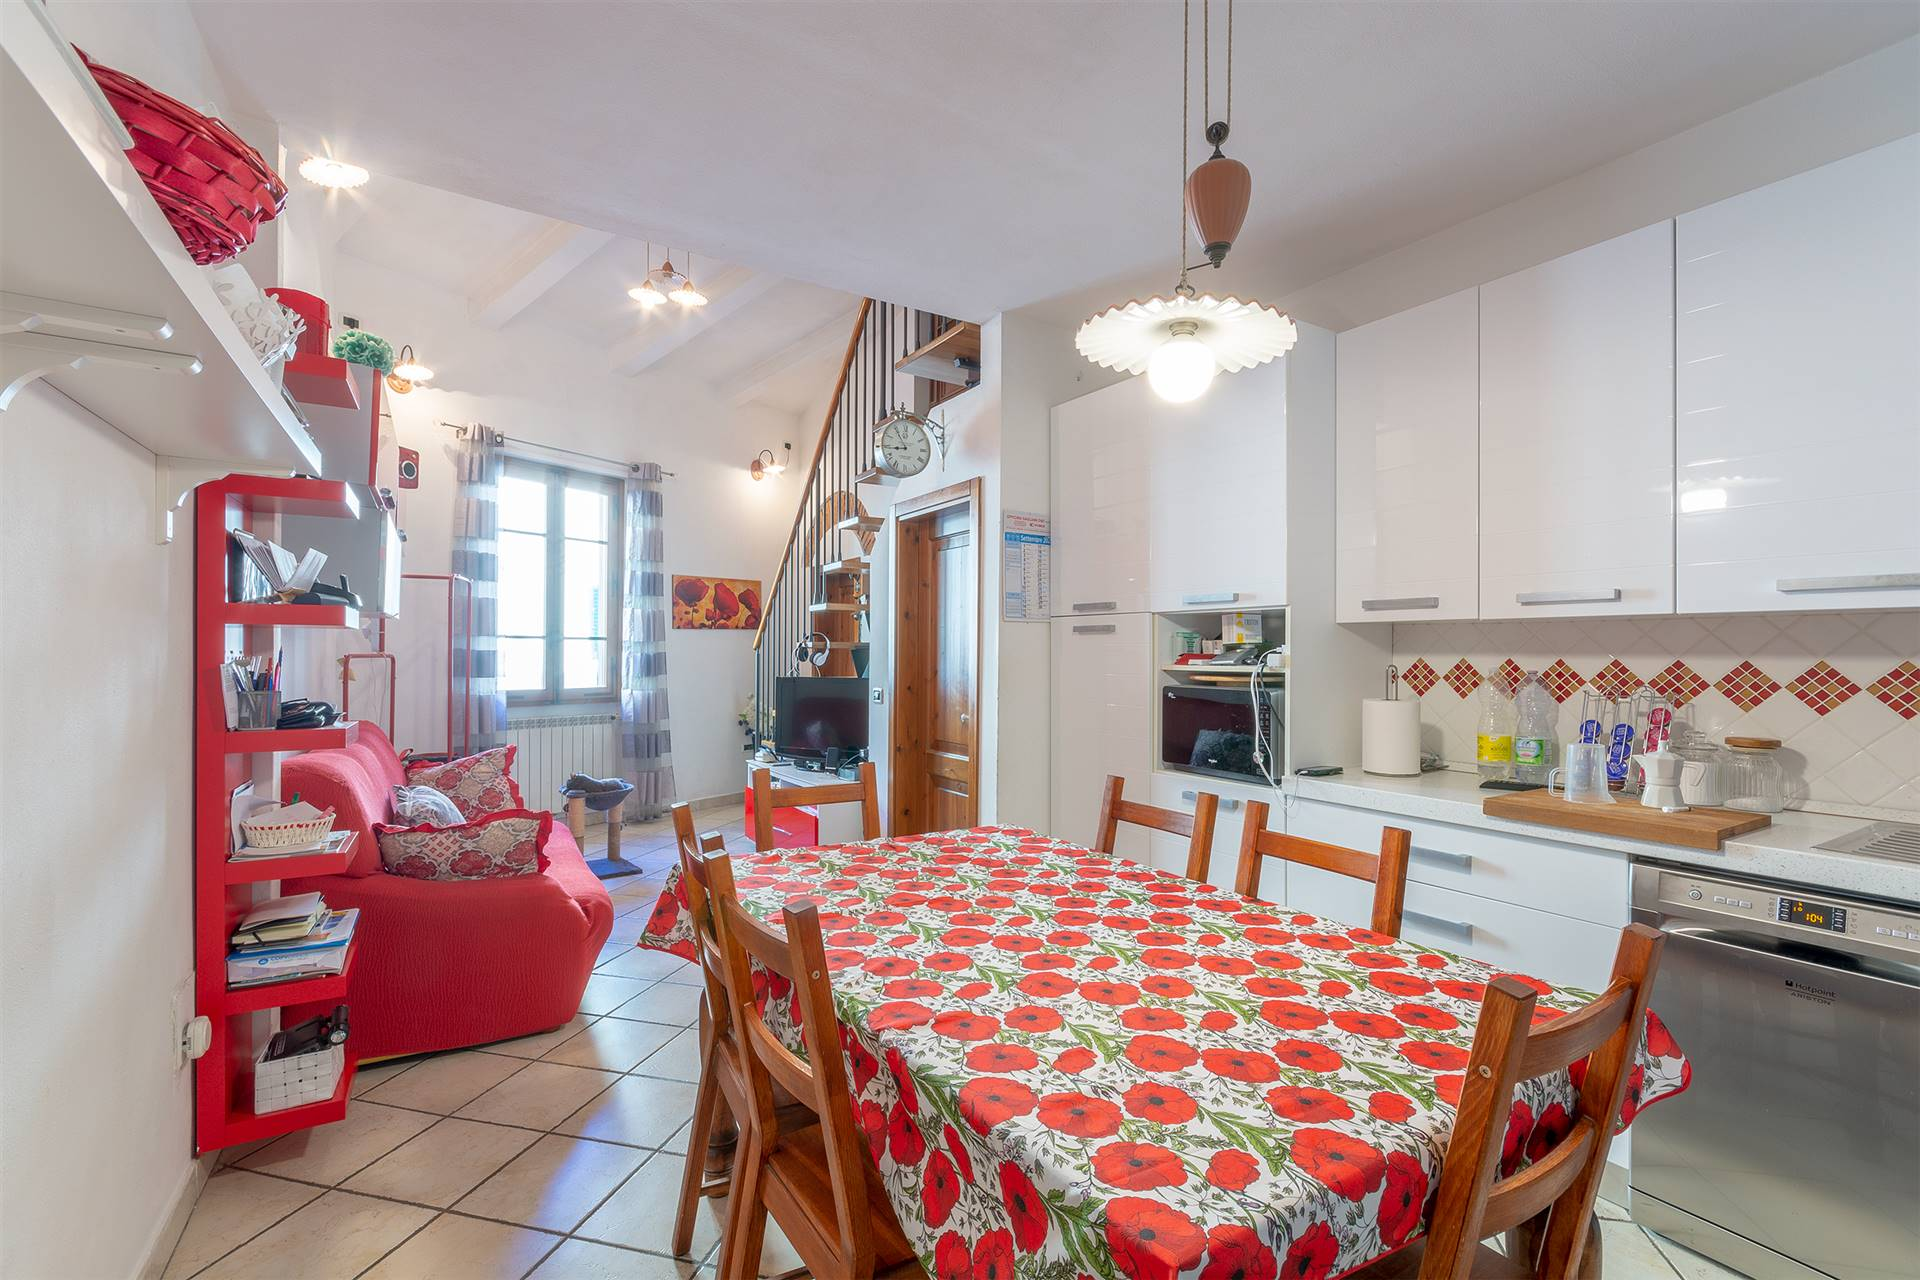 SIGNA, Apartment for sale, Excellent Condition, Heating Individual heating system, Energetic class: F, Epi: 148,1 kwh/m2 year, placed at 1° on 1,